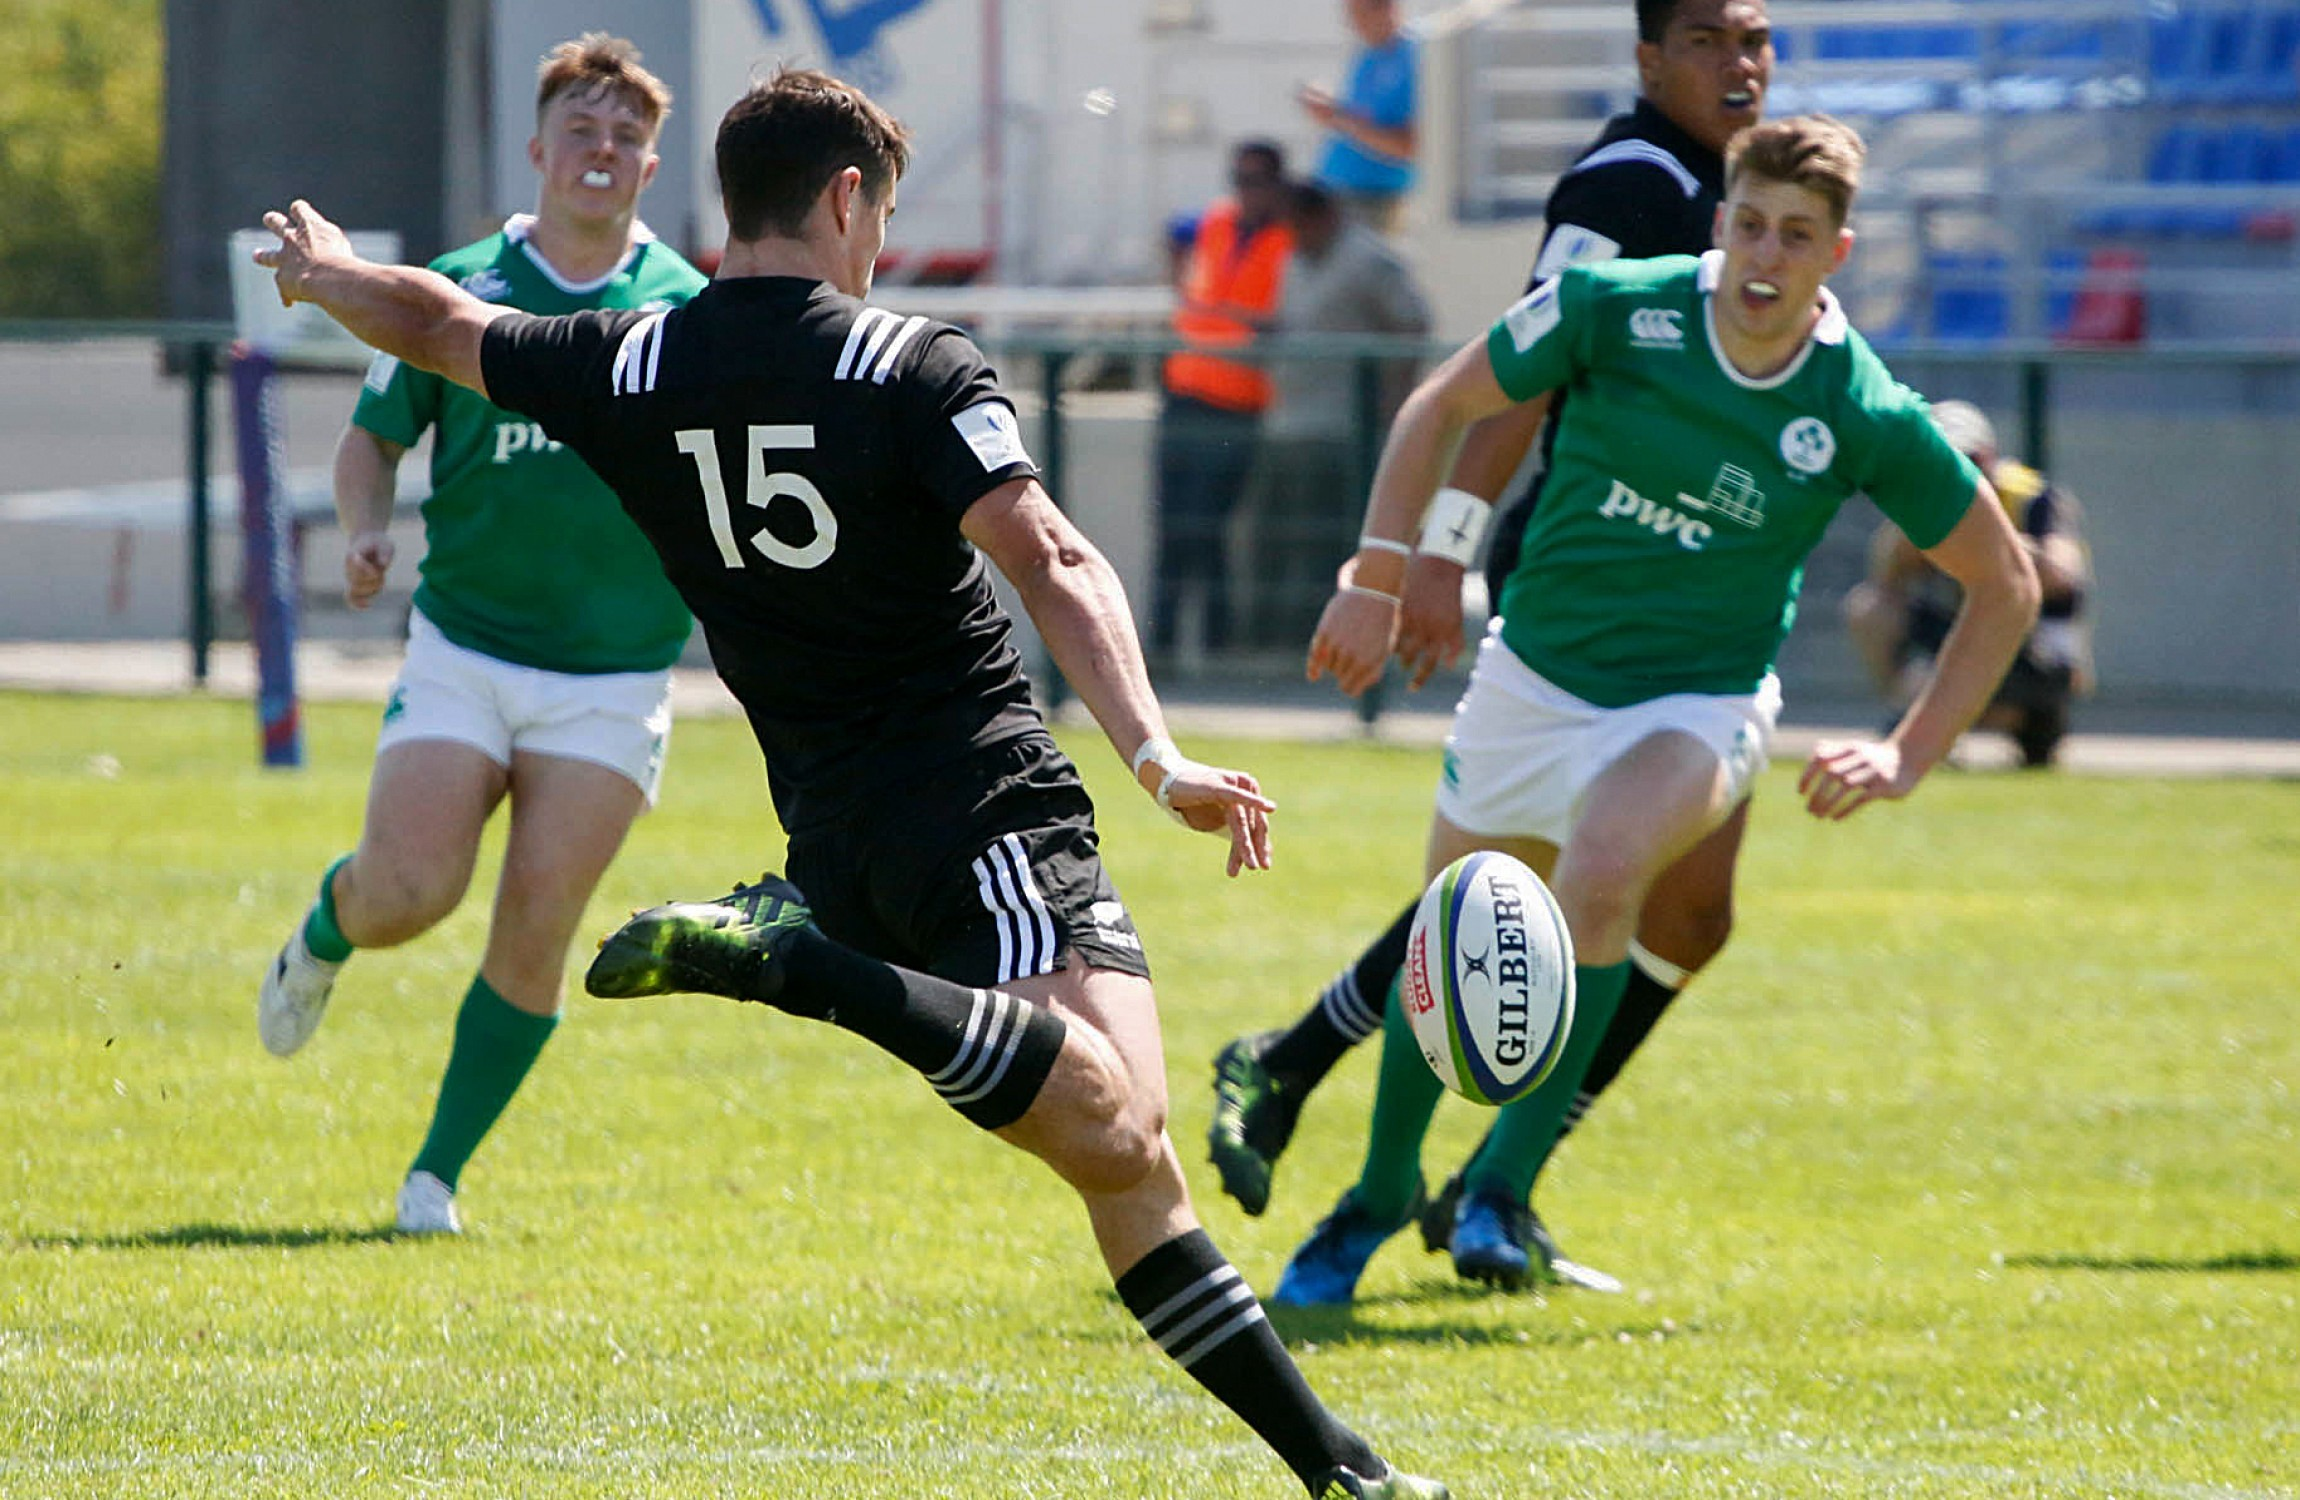 New Zealand under 20's into World Championship semi-finals